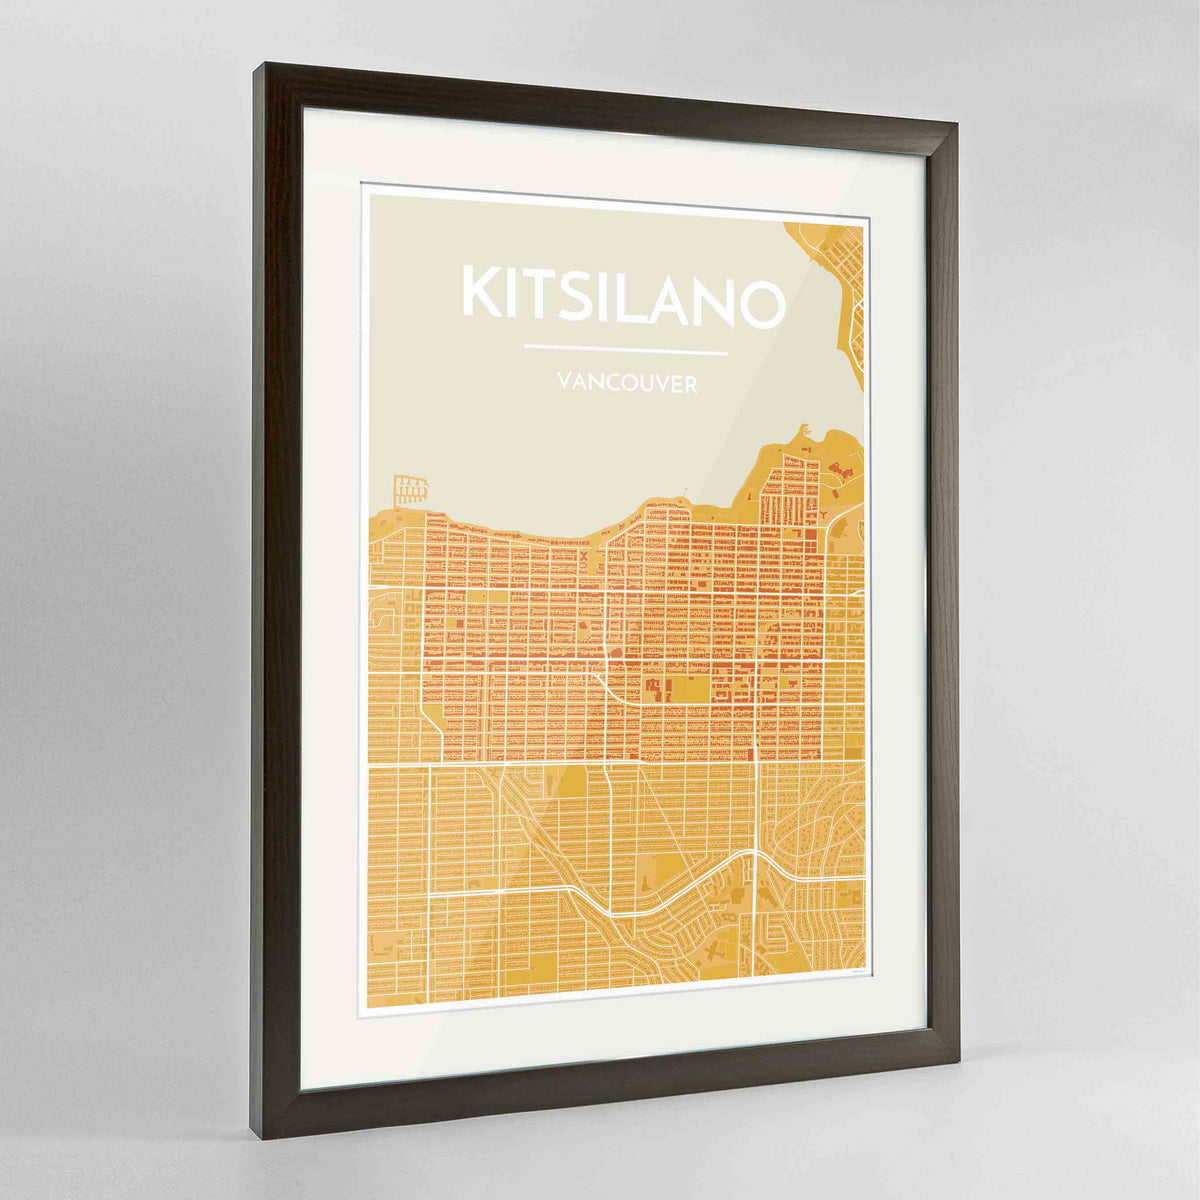 "Framed Kitsilano Vancouver Map Art Print 24x36"" Contemporary Walnut frame Point Two Design Group"